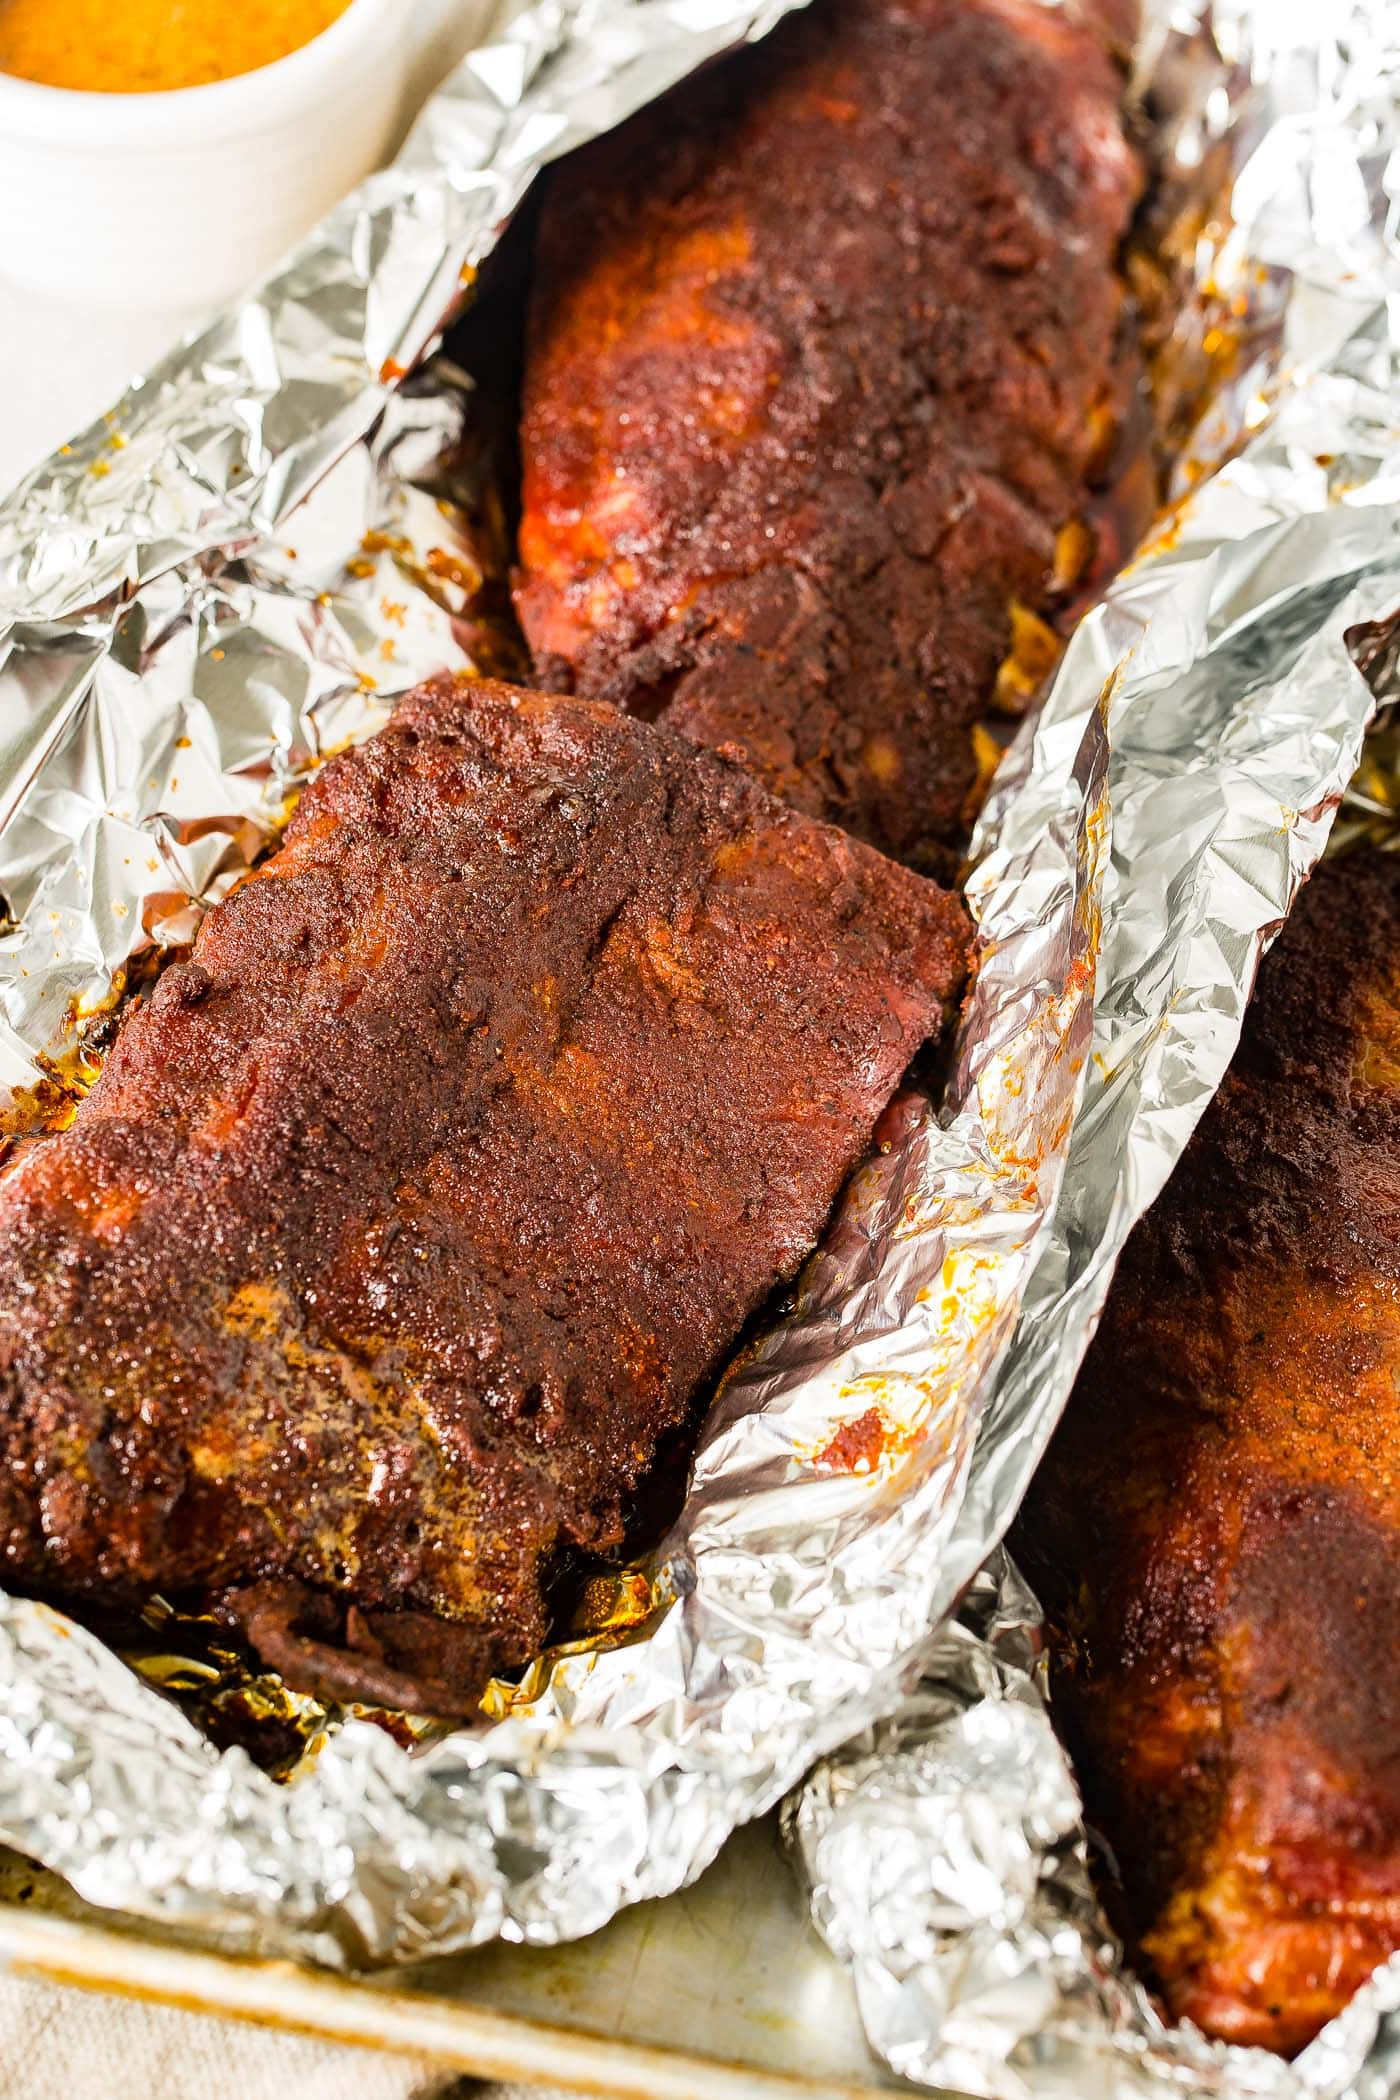 A photo of smoked ribs hot off the smoker still wrapped in foil with the foil just opened on the top.